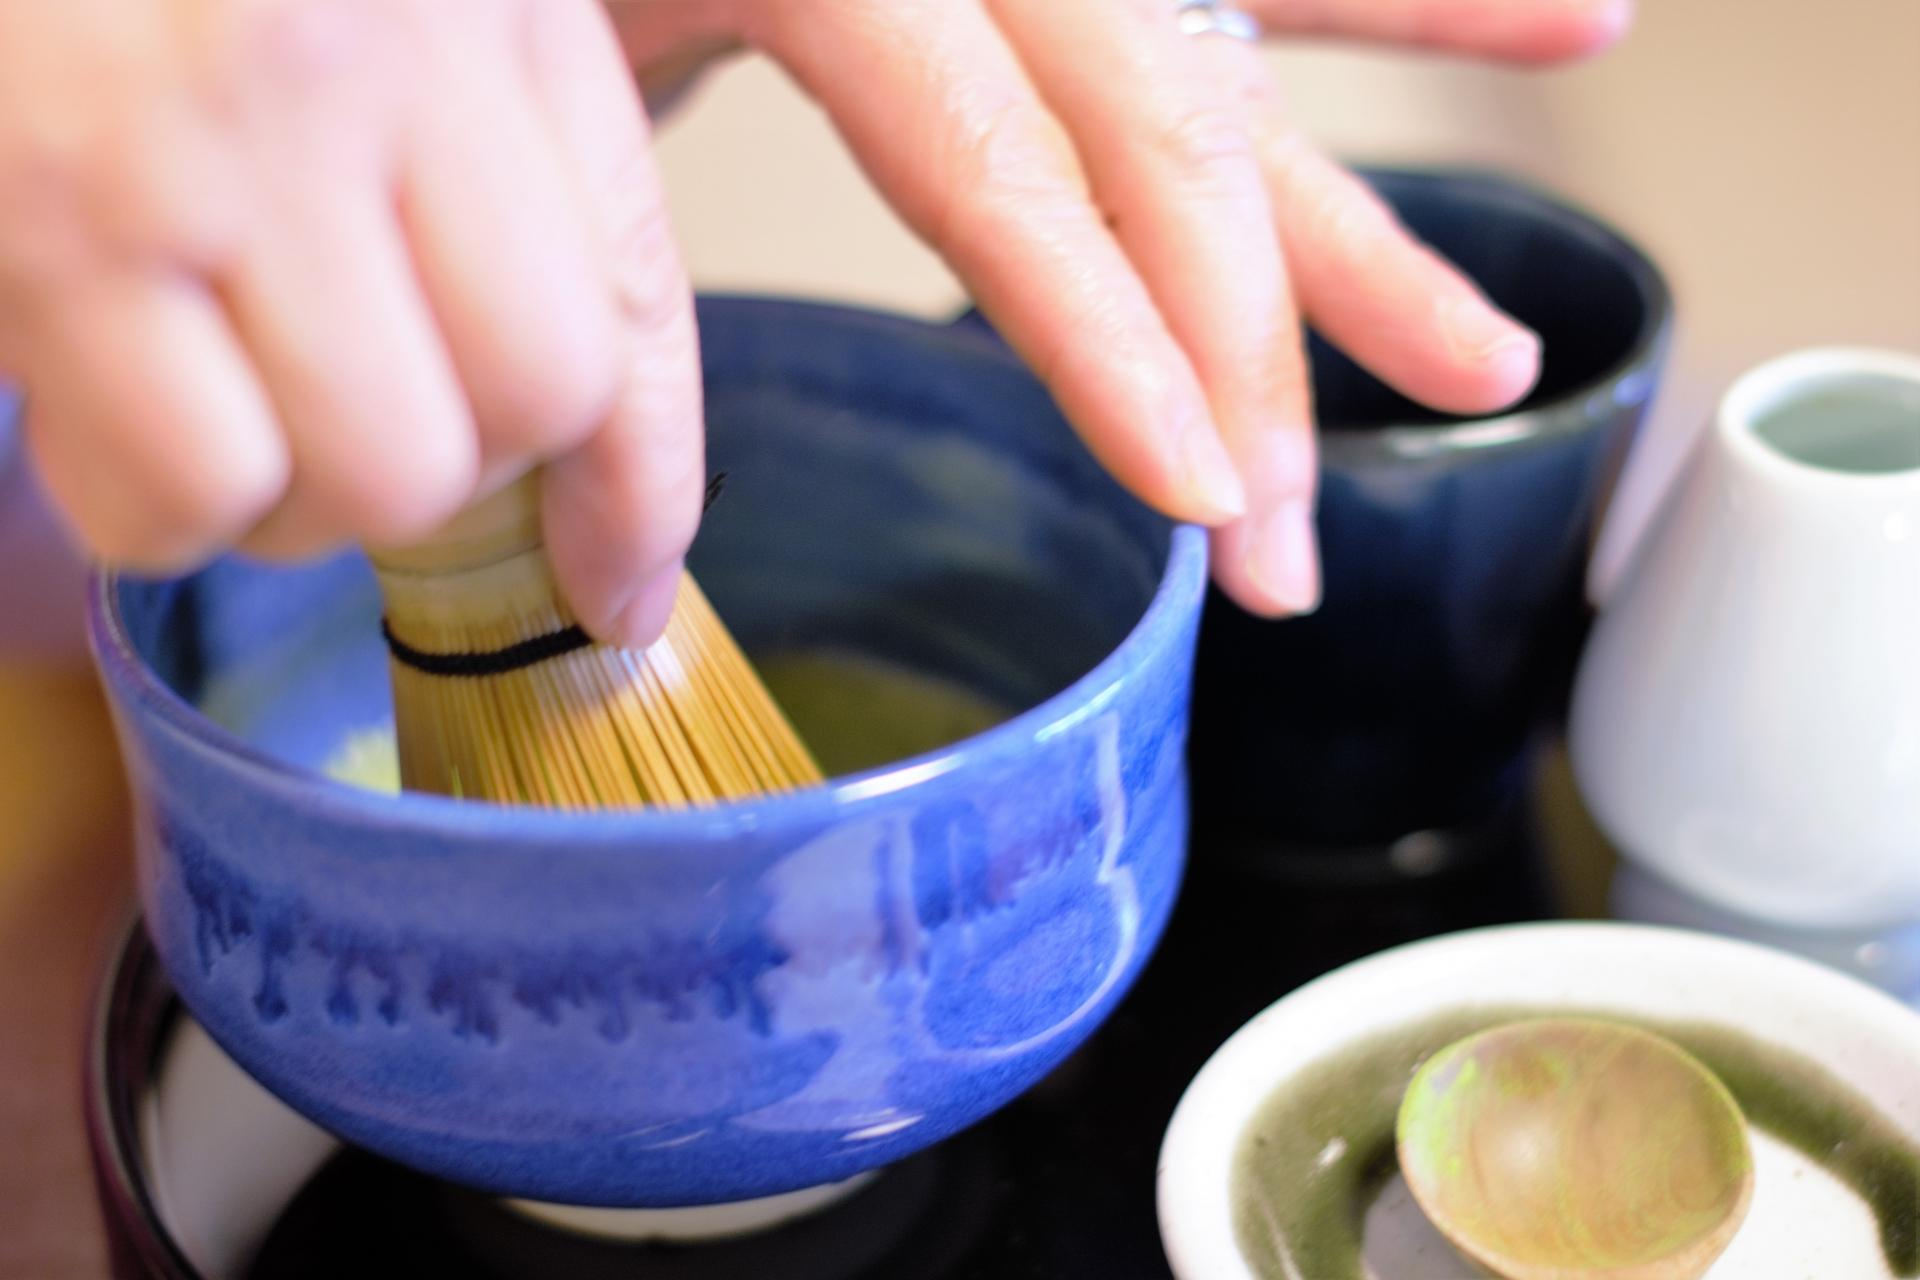 You can try to make Matcha by yourself.